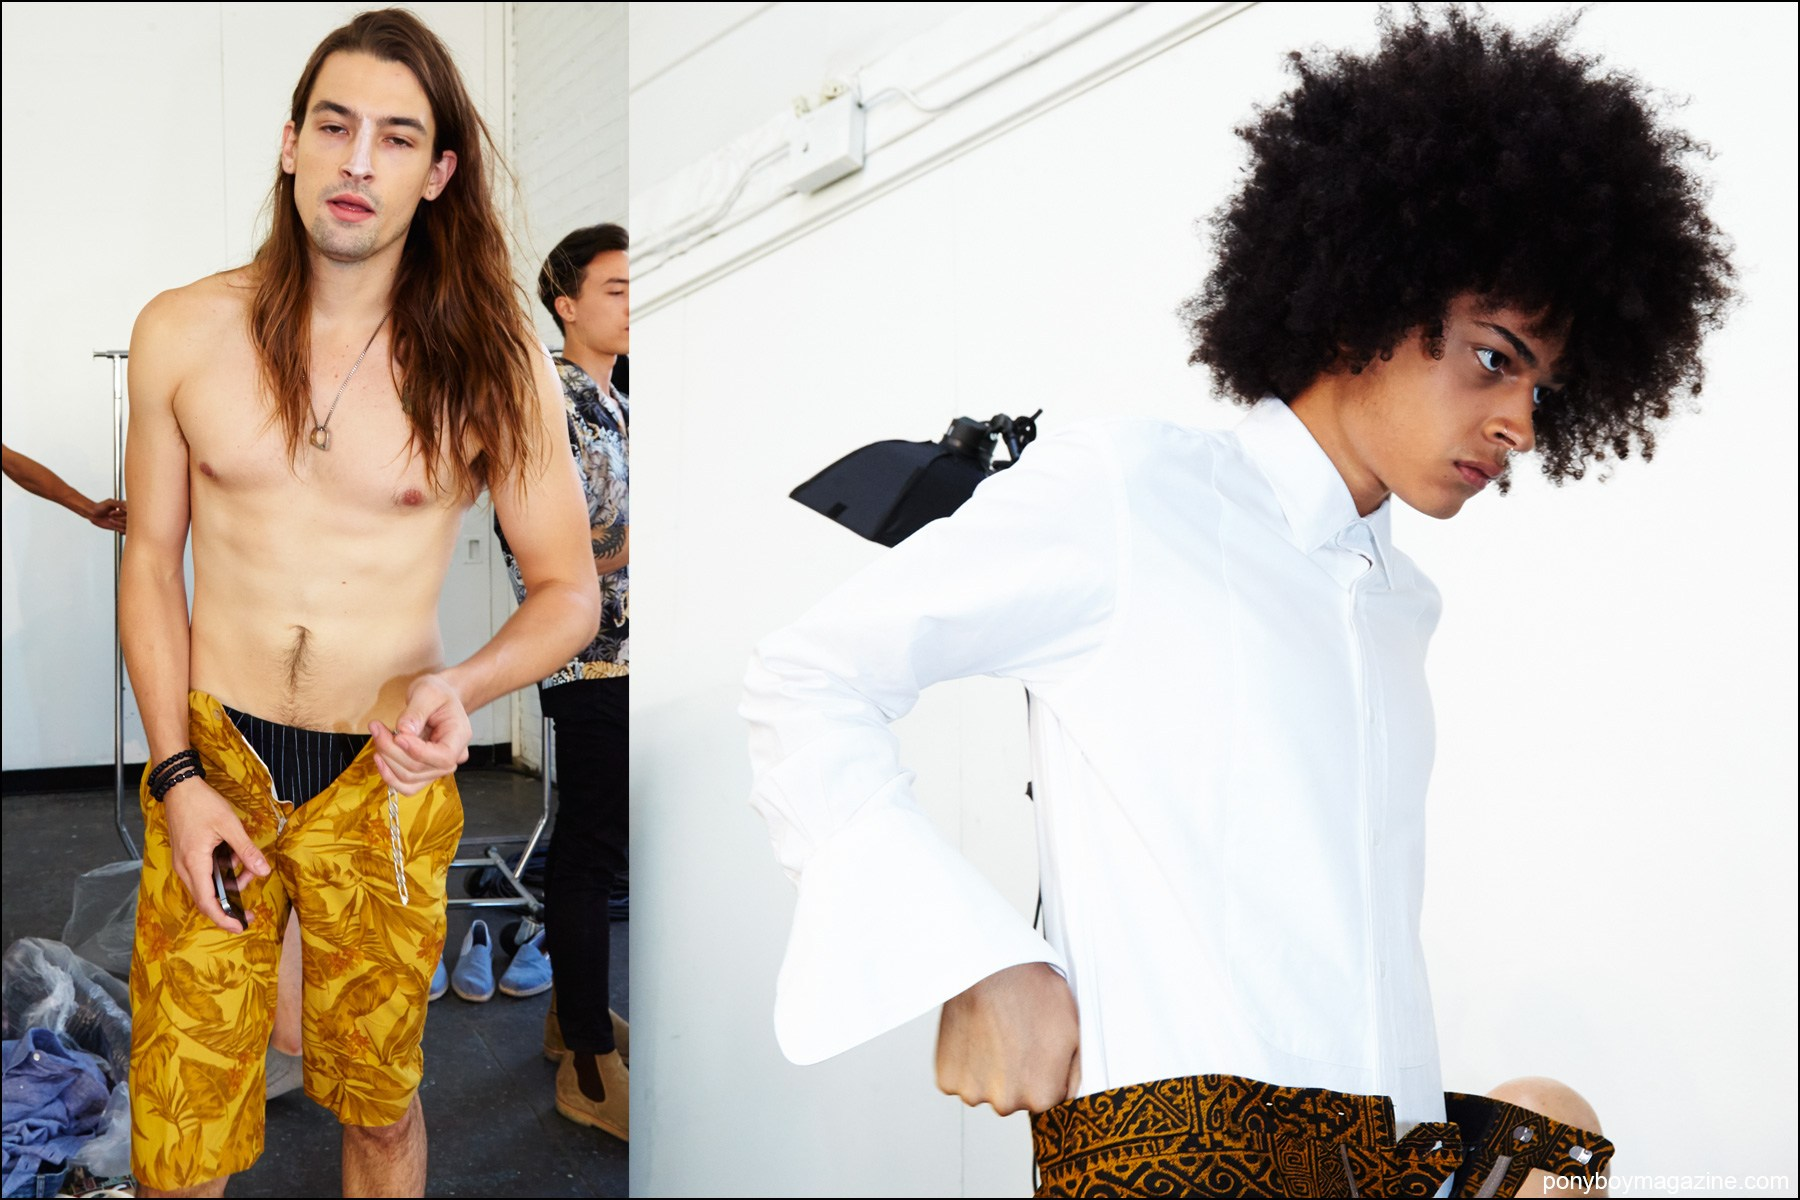 Snaps of male model's getting dressed, backstage at David Hart S/S17 menswear show. Photographed by Alexander Thompson for Ponyboy magazine NY.